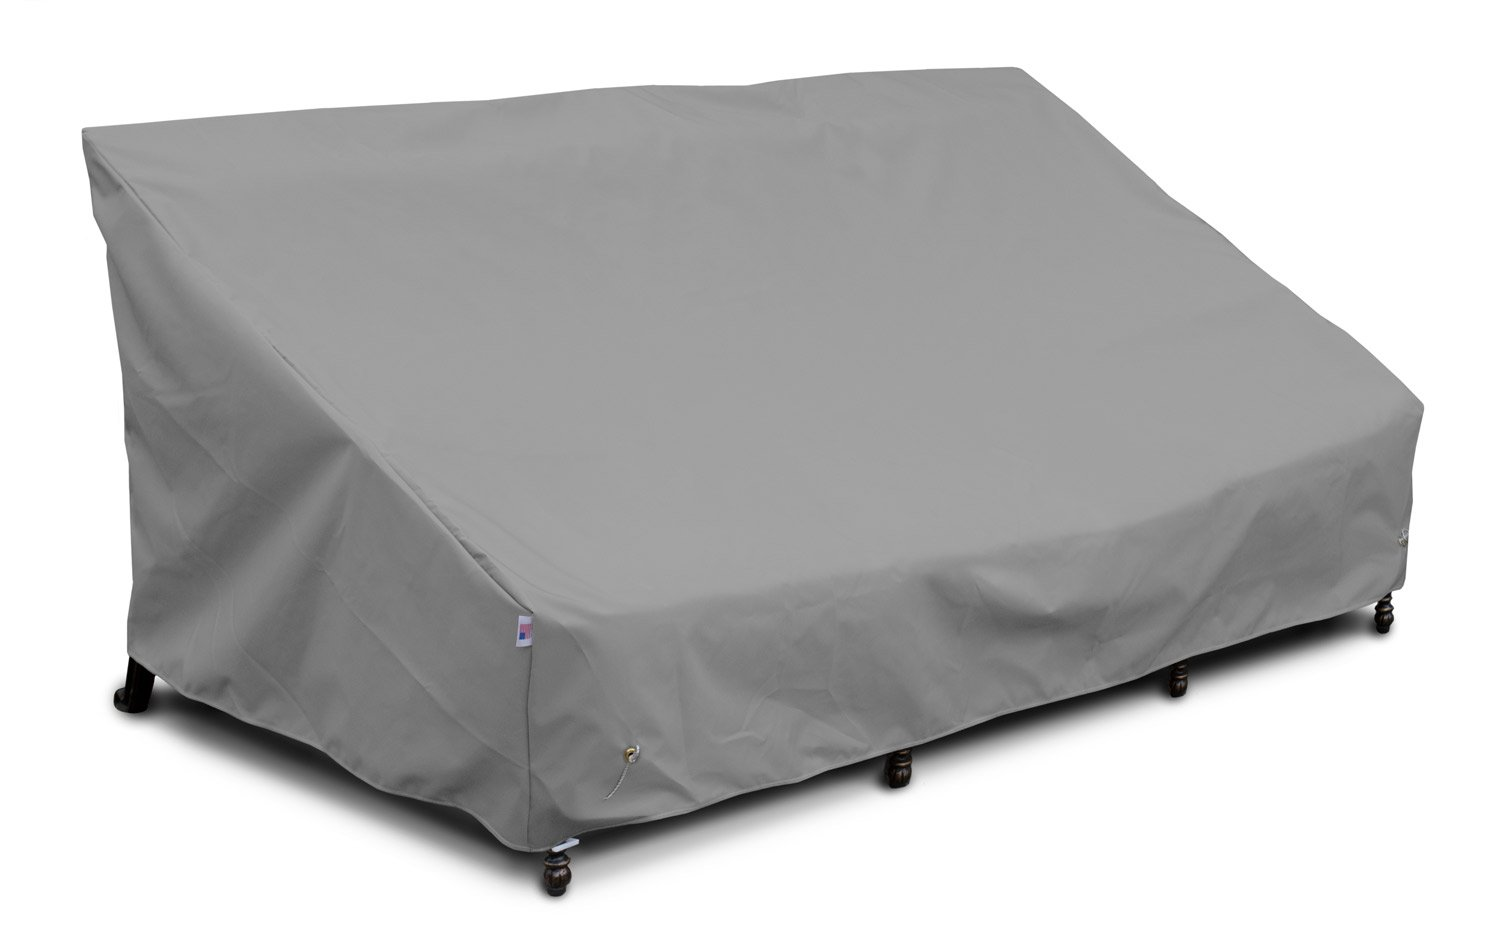 KoverRoos Weathermax 87450 Sofa Cover, 65-Inch Width by 35-Inch Diameter by 35-Inch Height, Charcoal